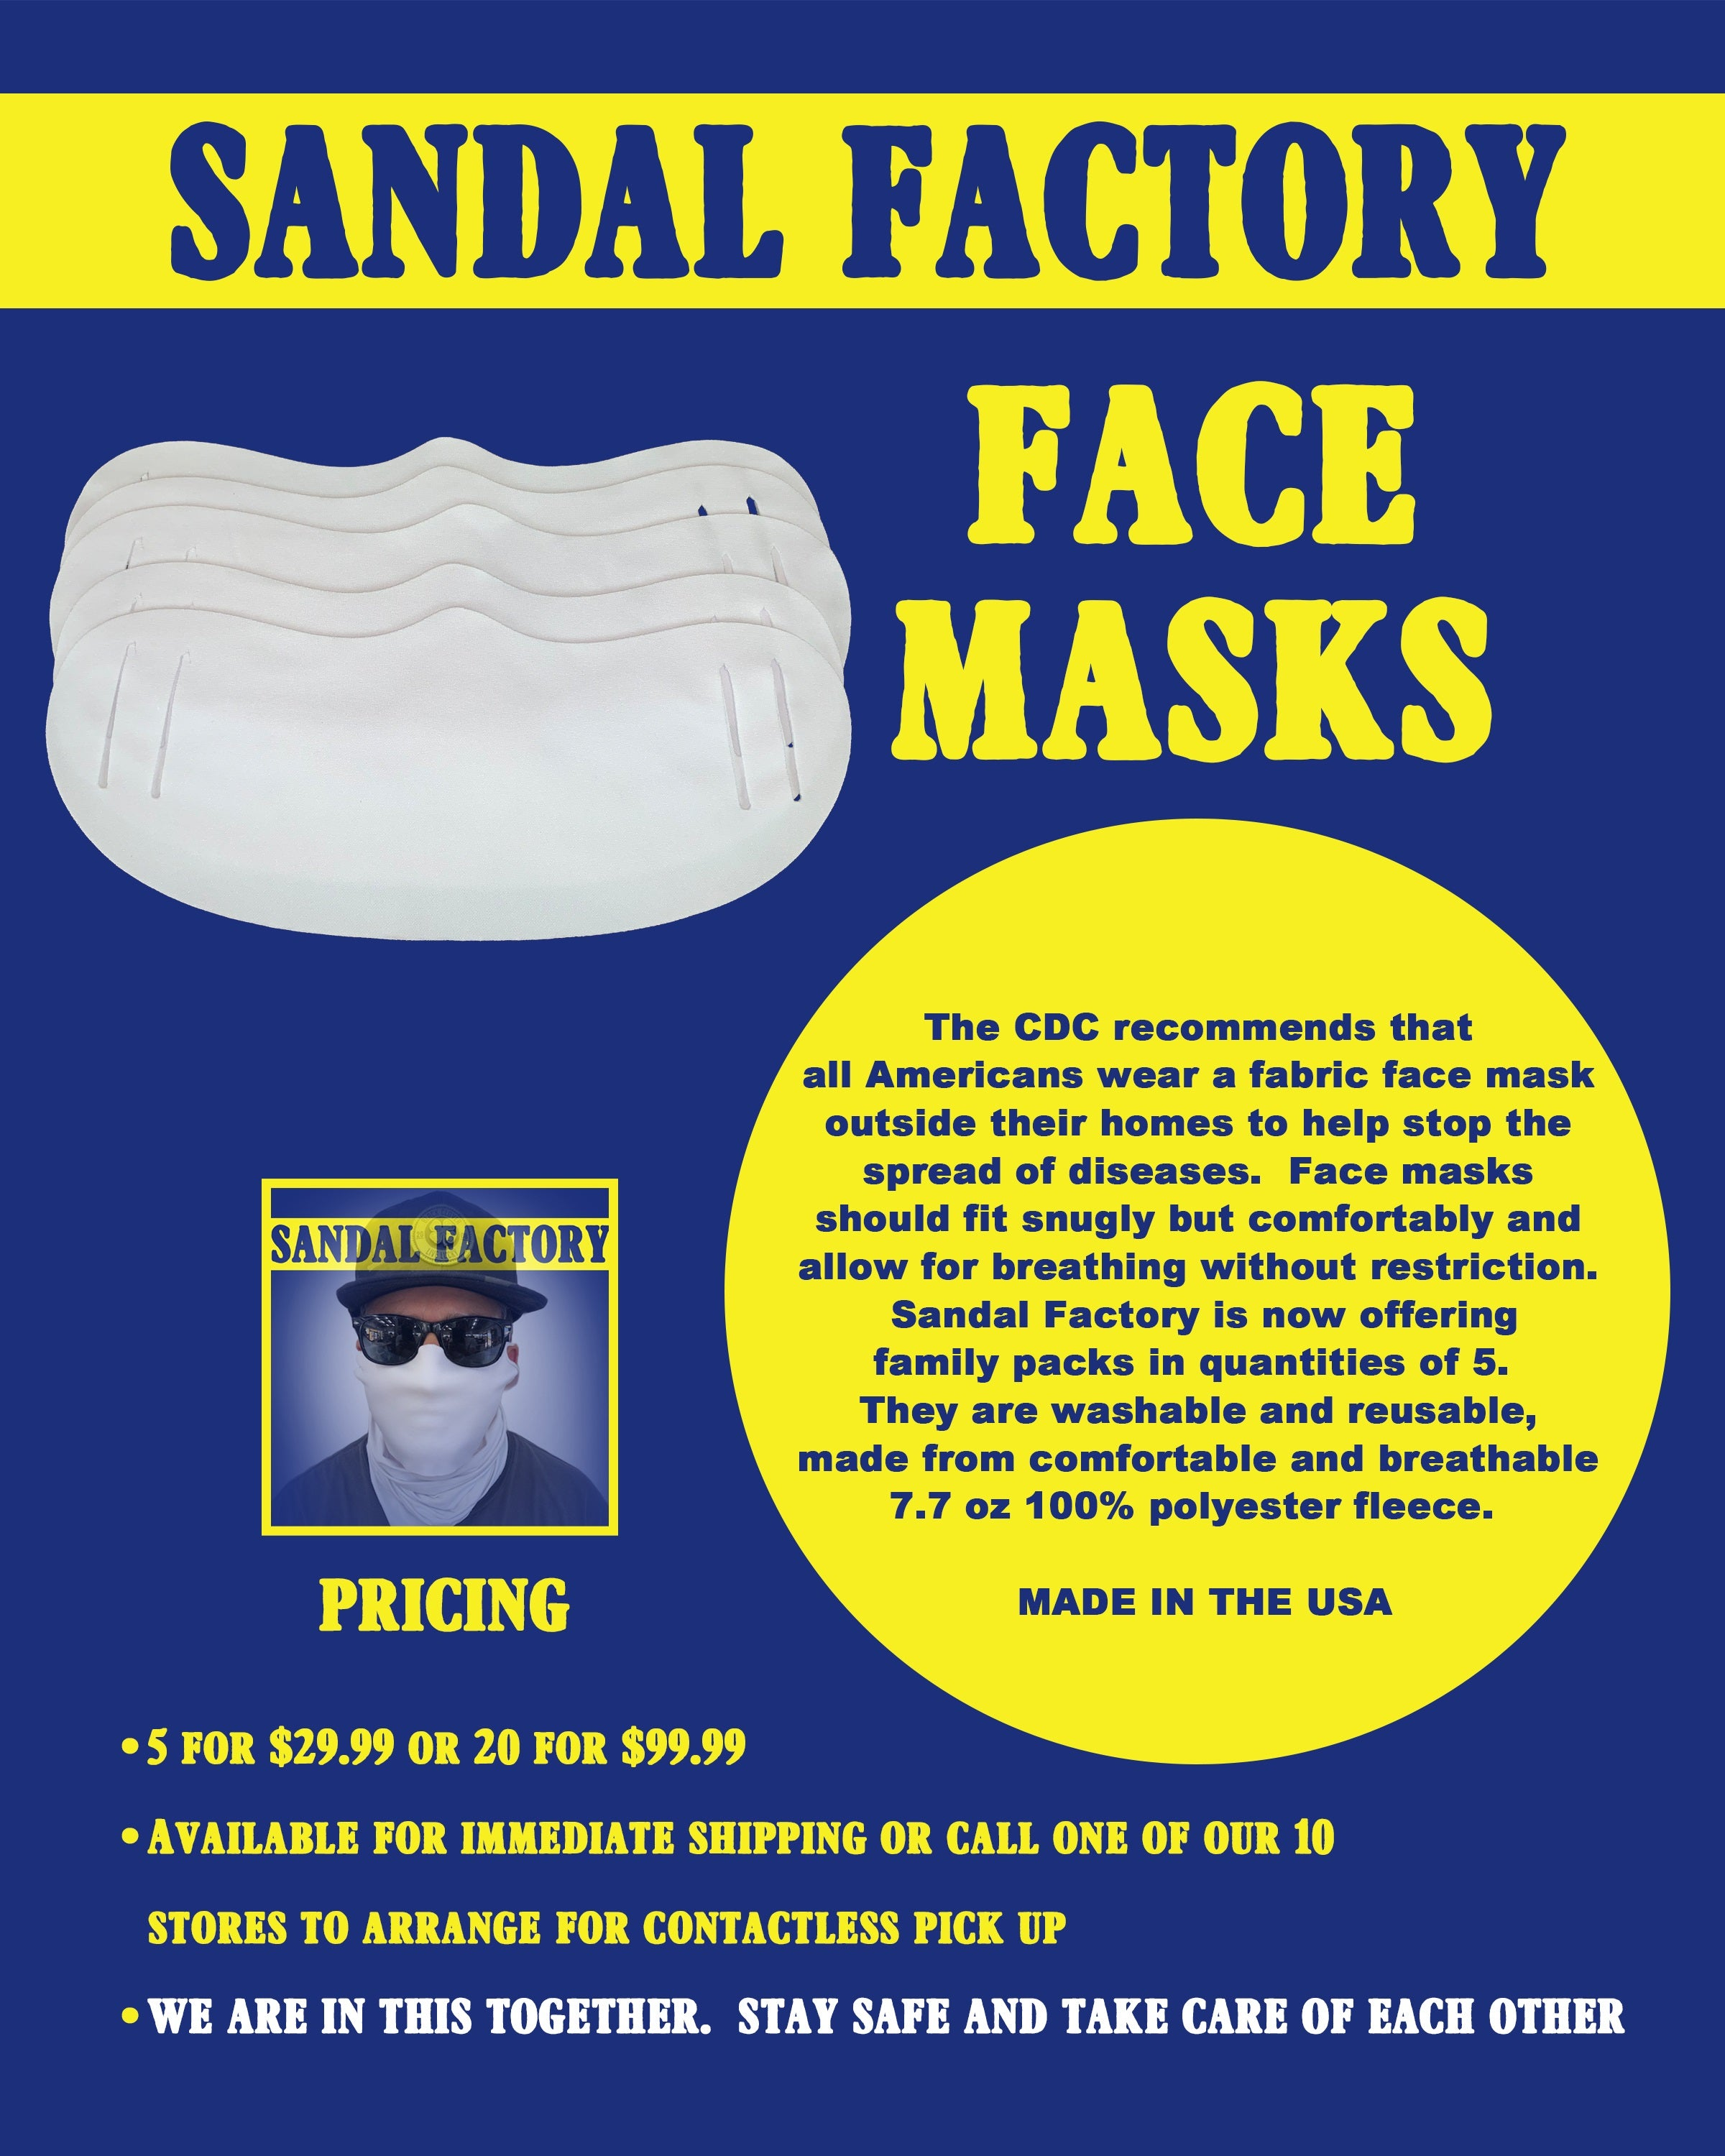 DAILY FACE MASK COVERS- 20 PACK- MADE IN THE USA